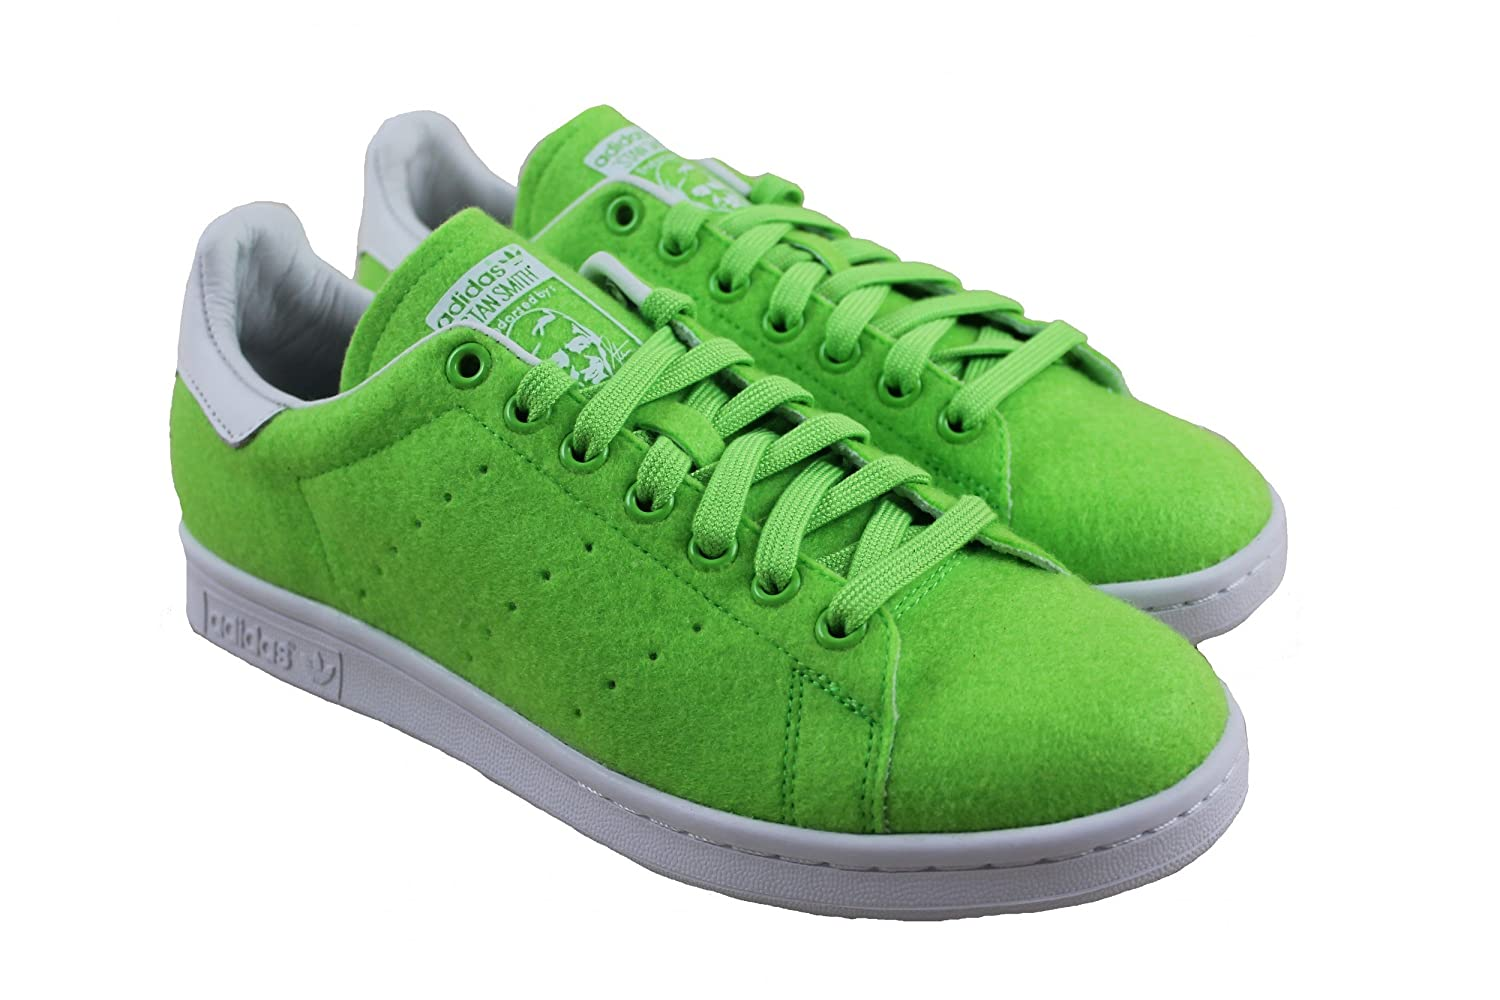 eb611c8cee5 Adidas - Stan Smith TNS - PW Solar Green - 42 2 3  Amazon.co.uk  Shoes    Bags